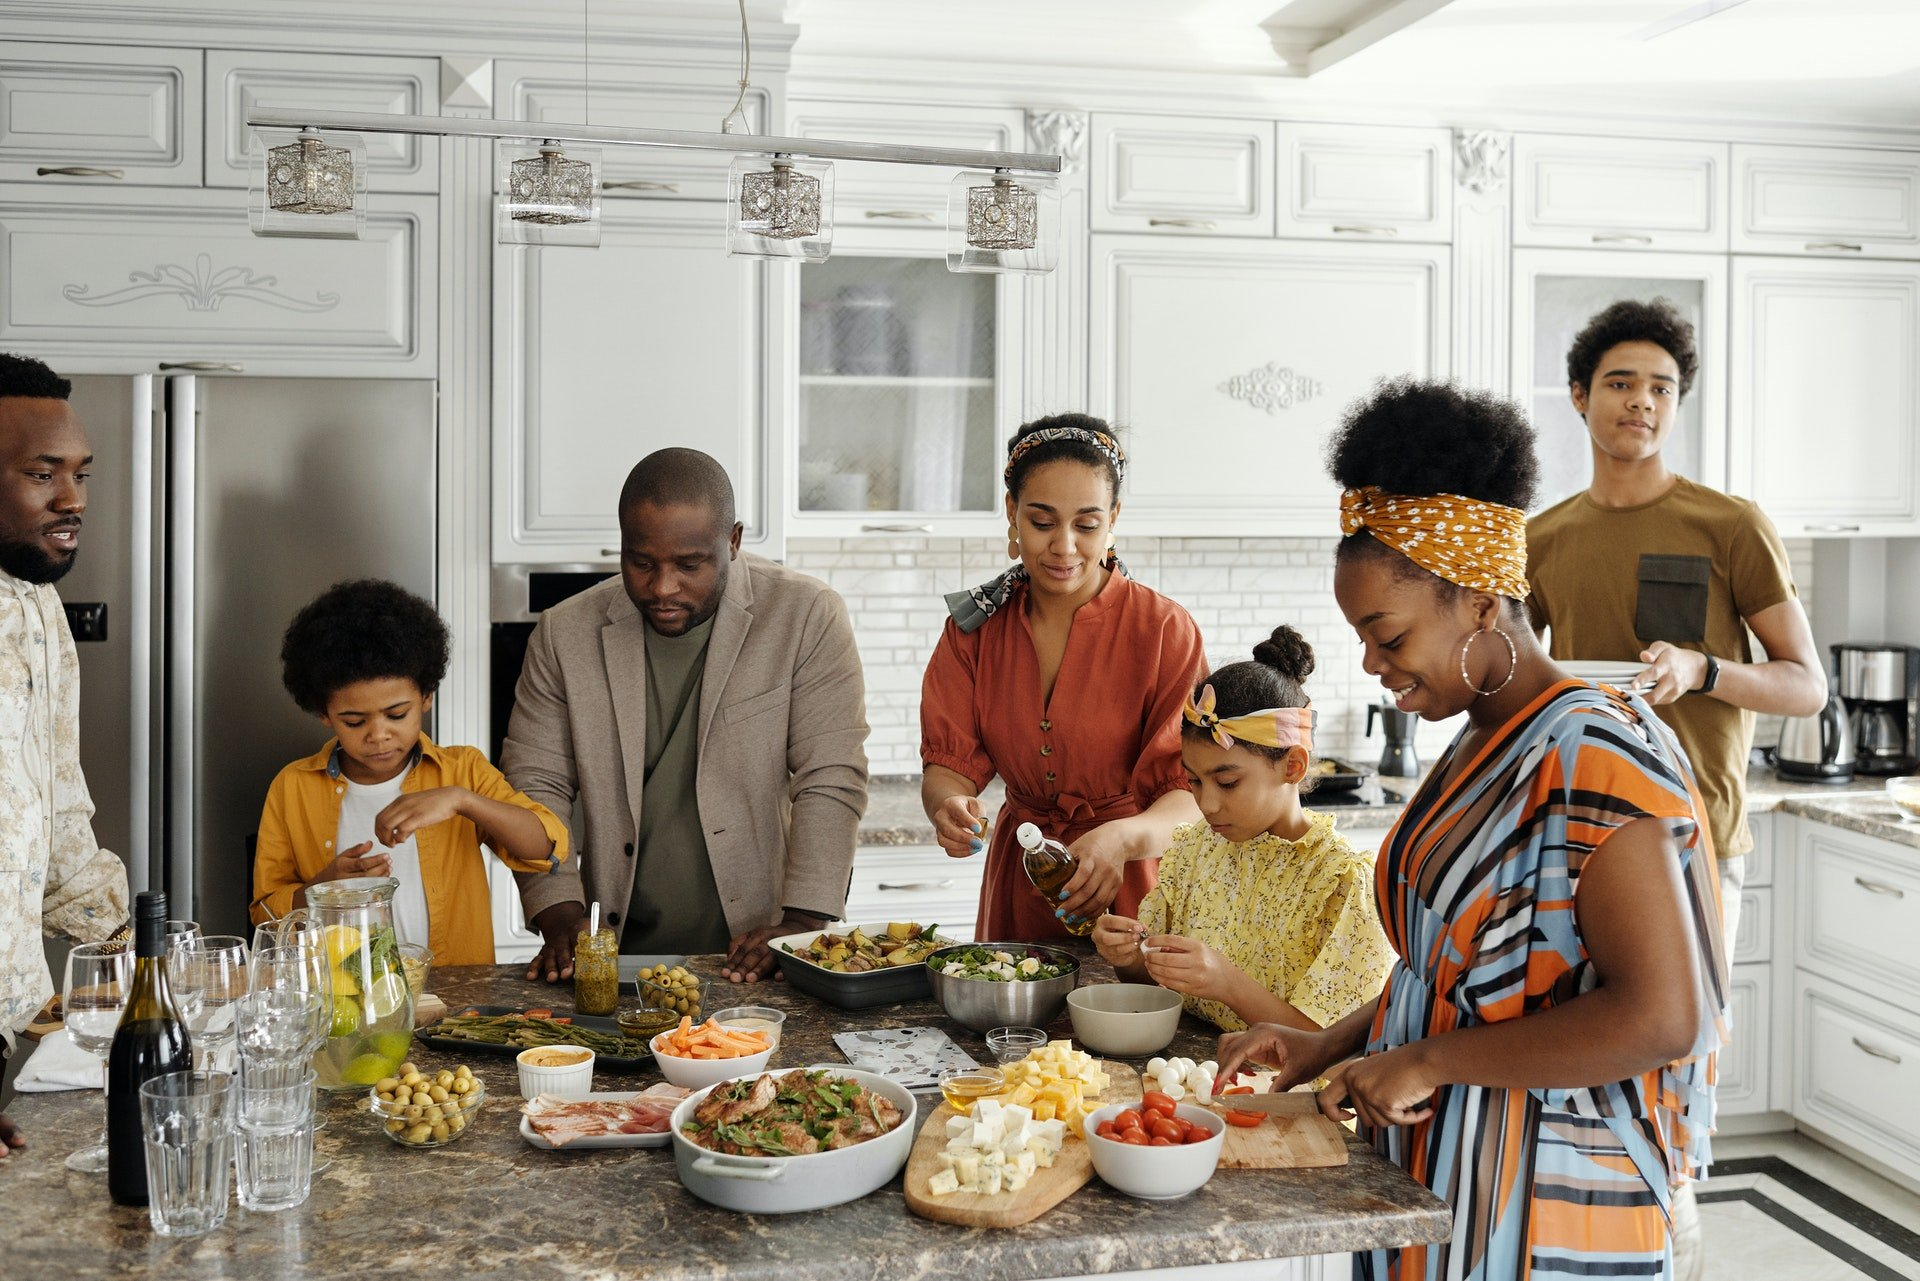 A largge family having a preparing a meal | Photo: Pexels